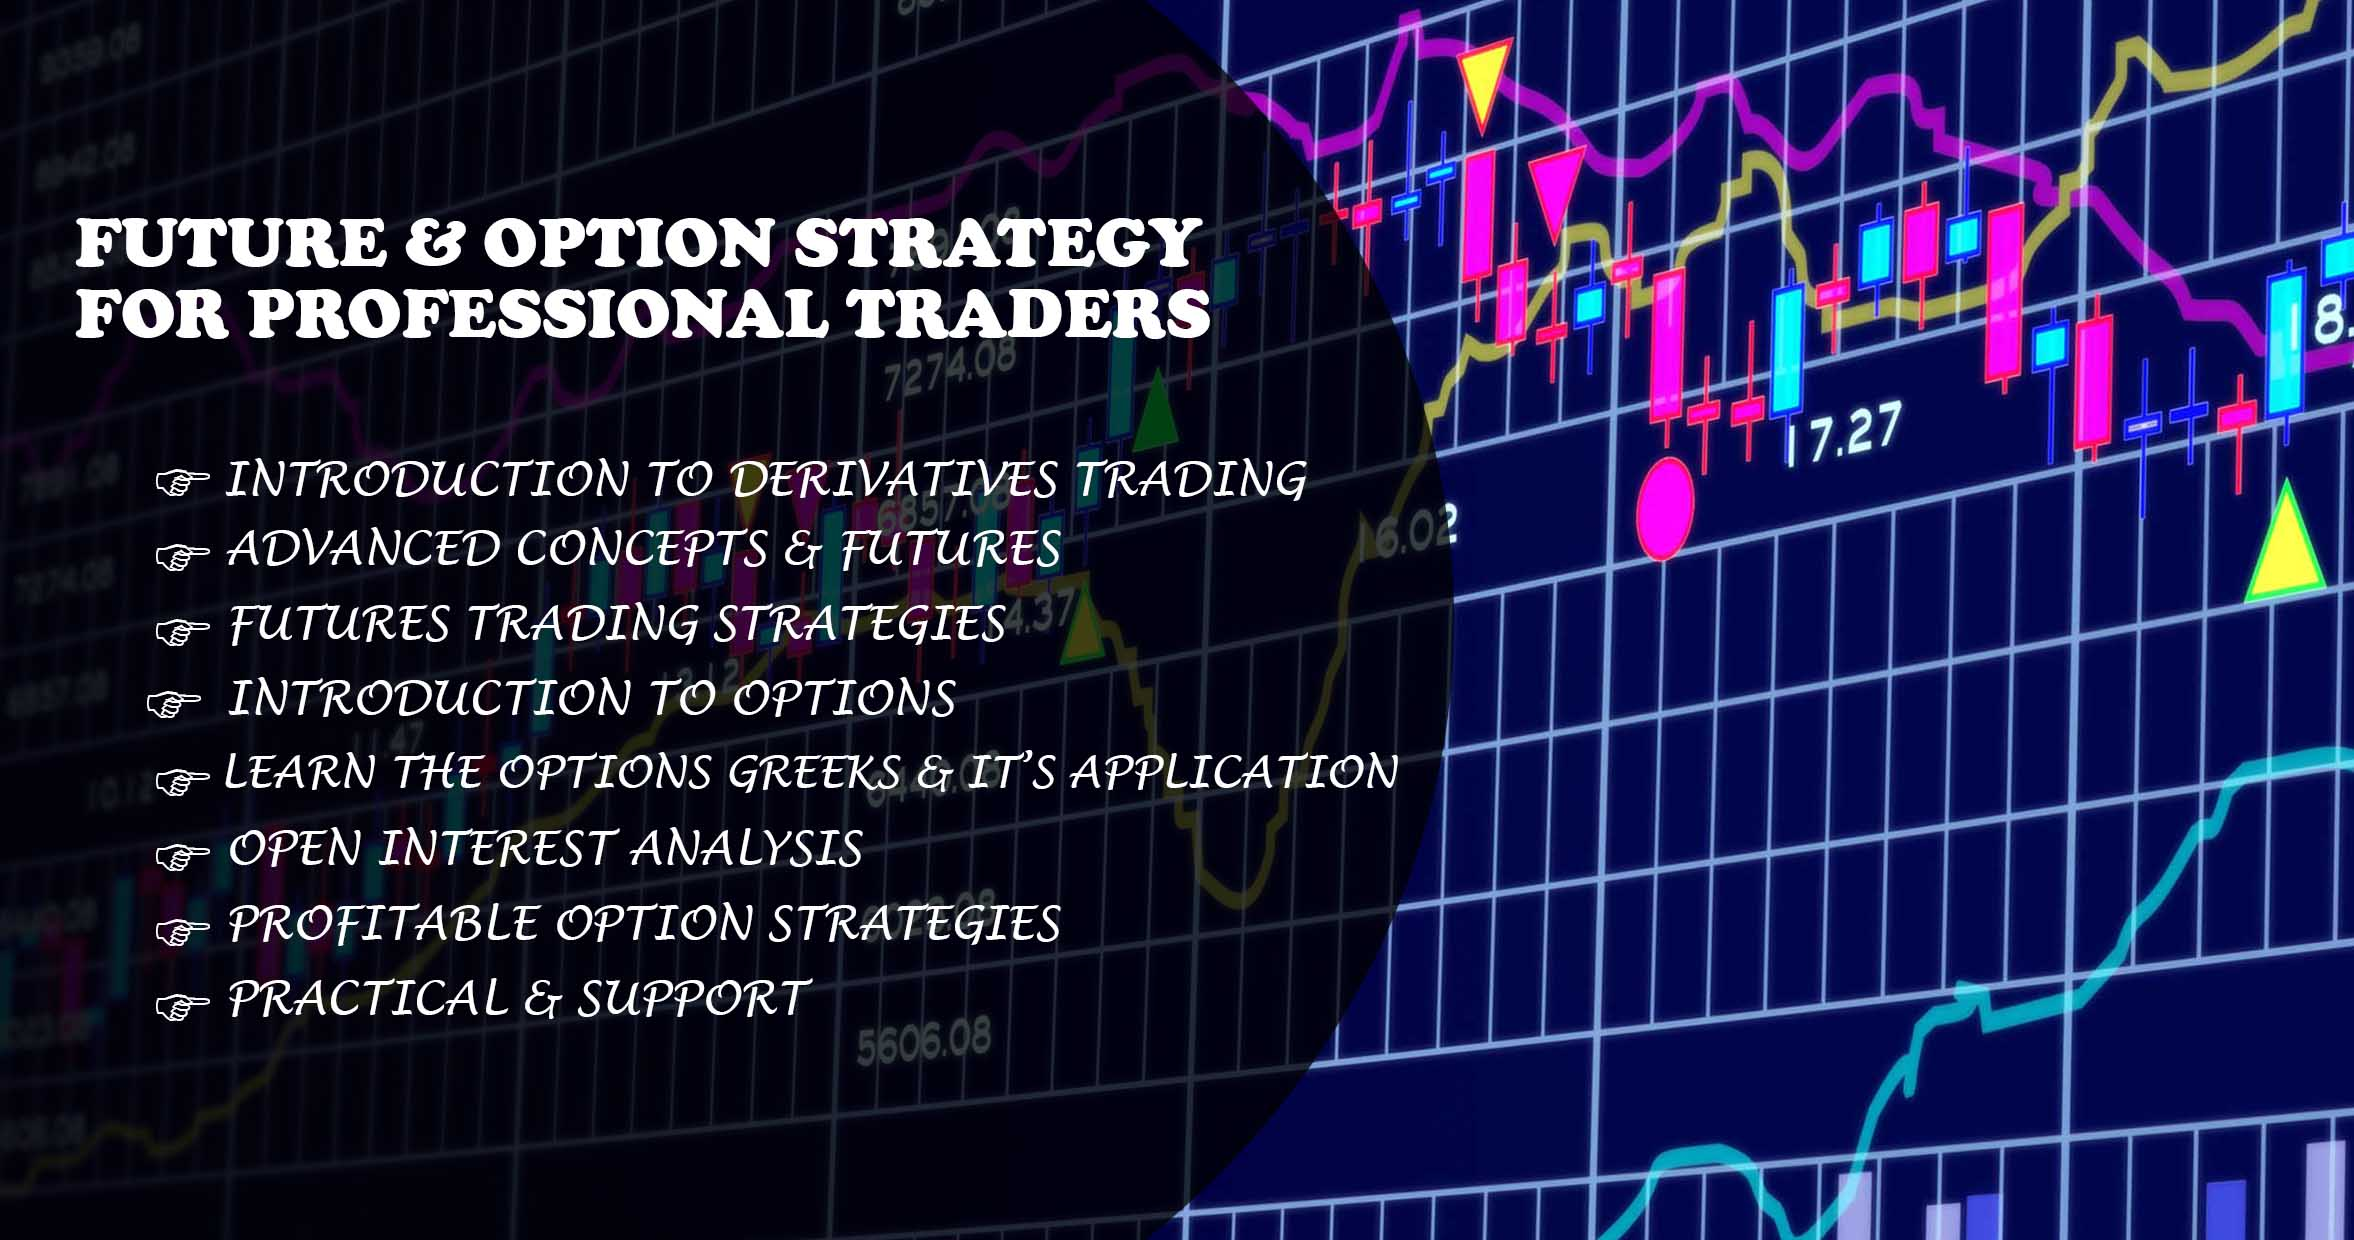 Futures & Option Strategies